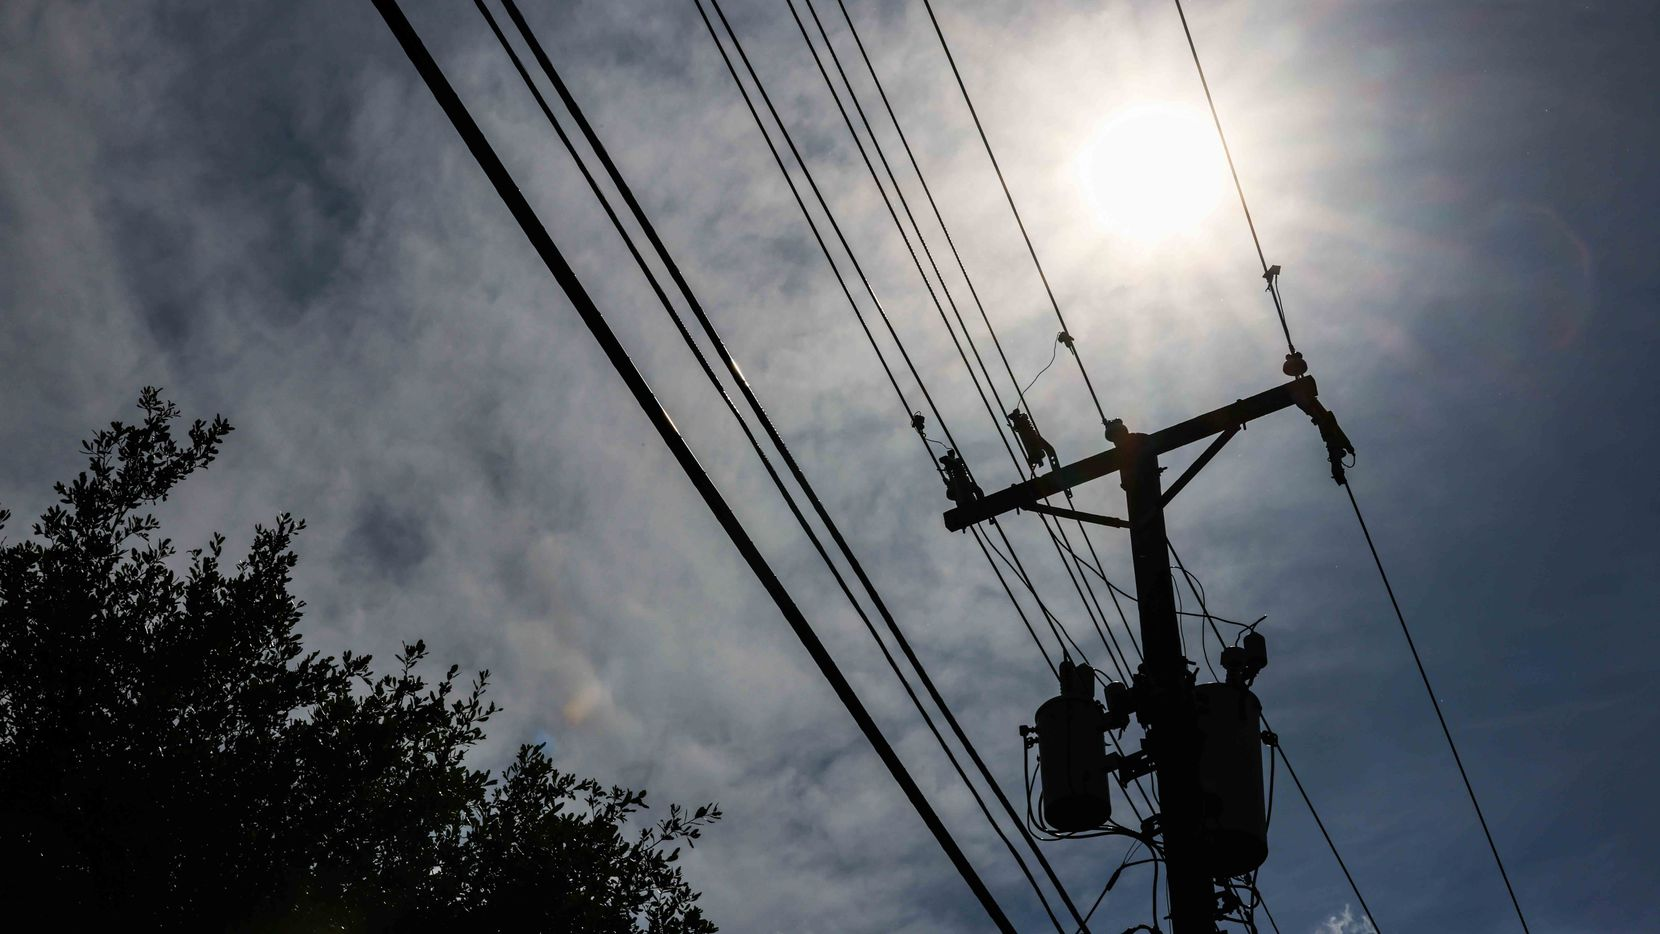 Temperatures reach 97 degrees with a sensation of 105 degrees in Dallas on Monday afternoon, June 14, 2021, as ERCOT send a conservation alert asking Texans to reduce electric use through Friday.